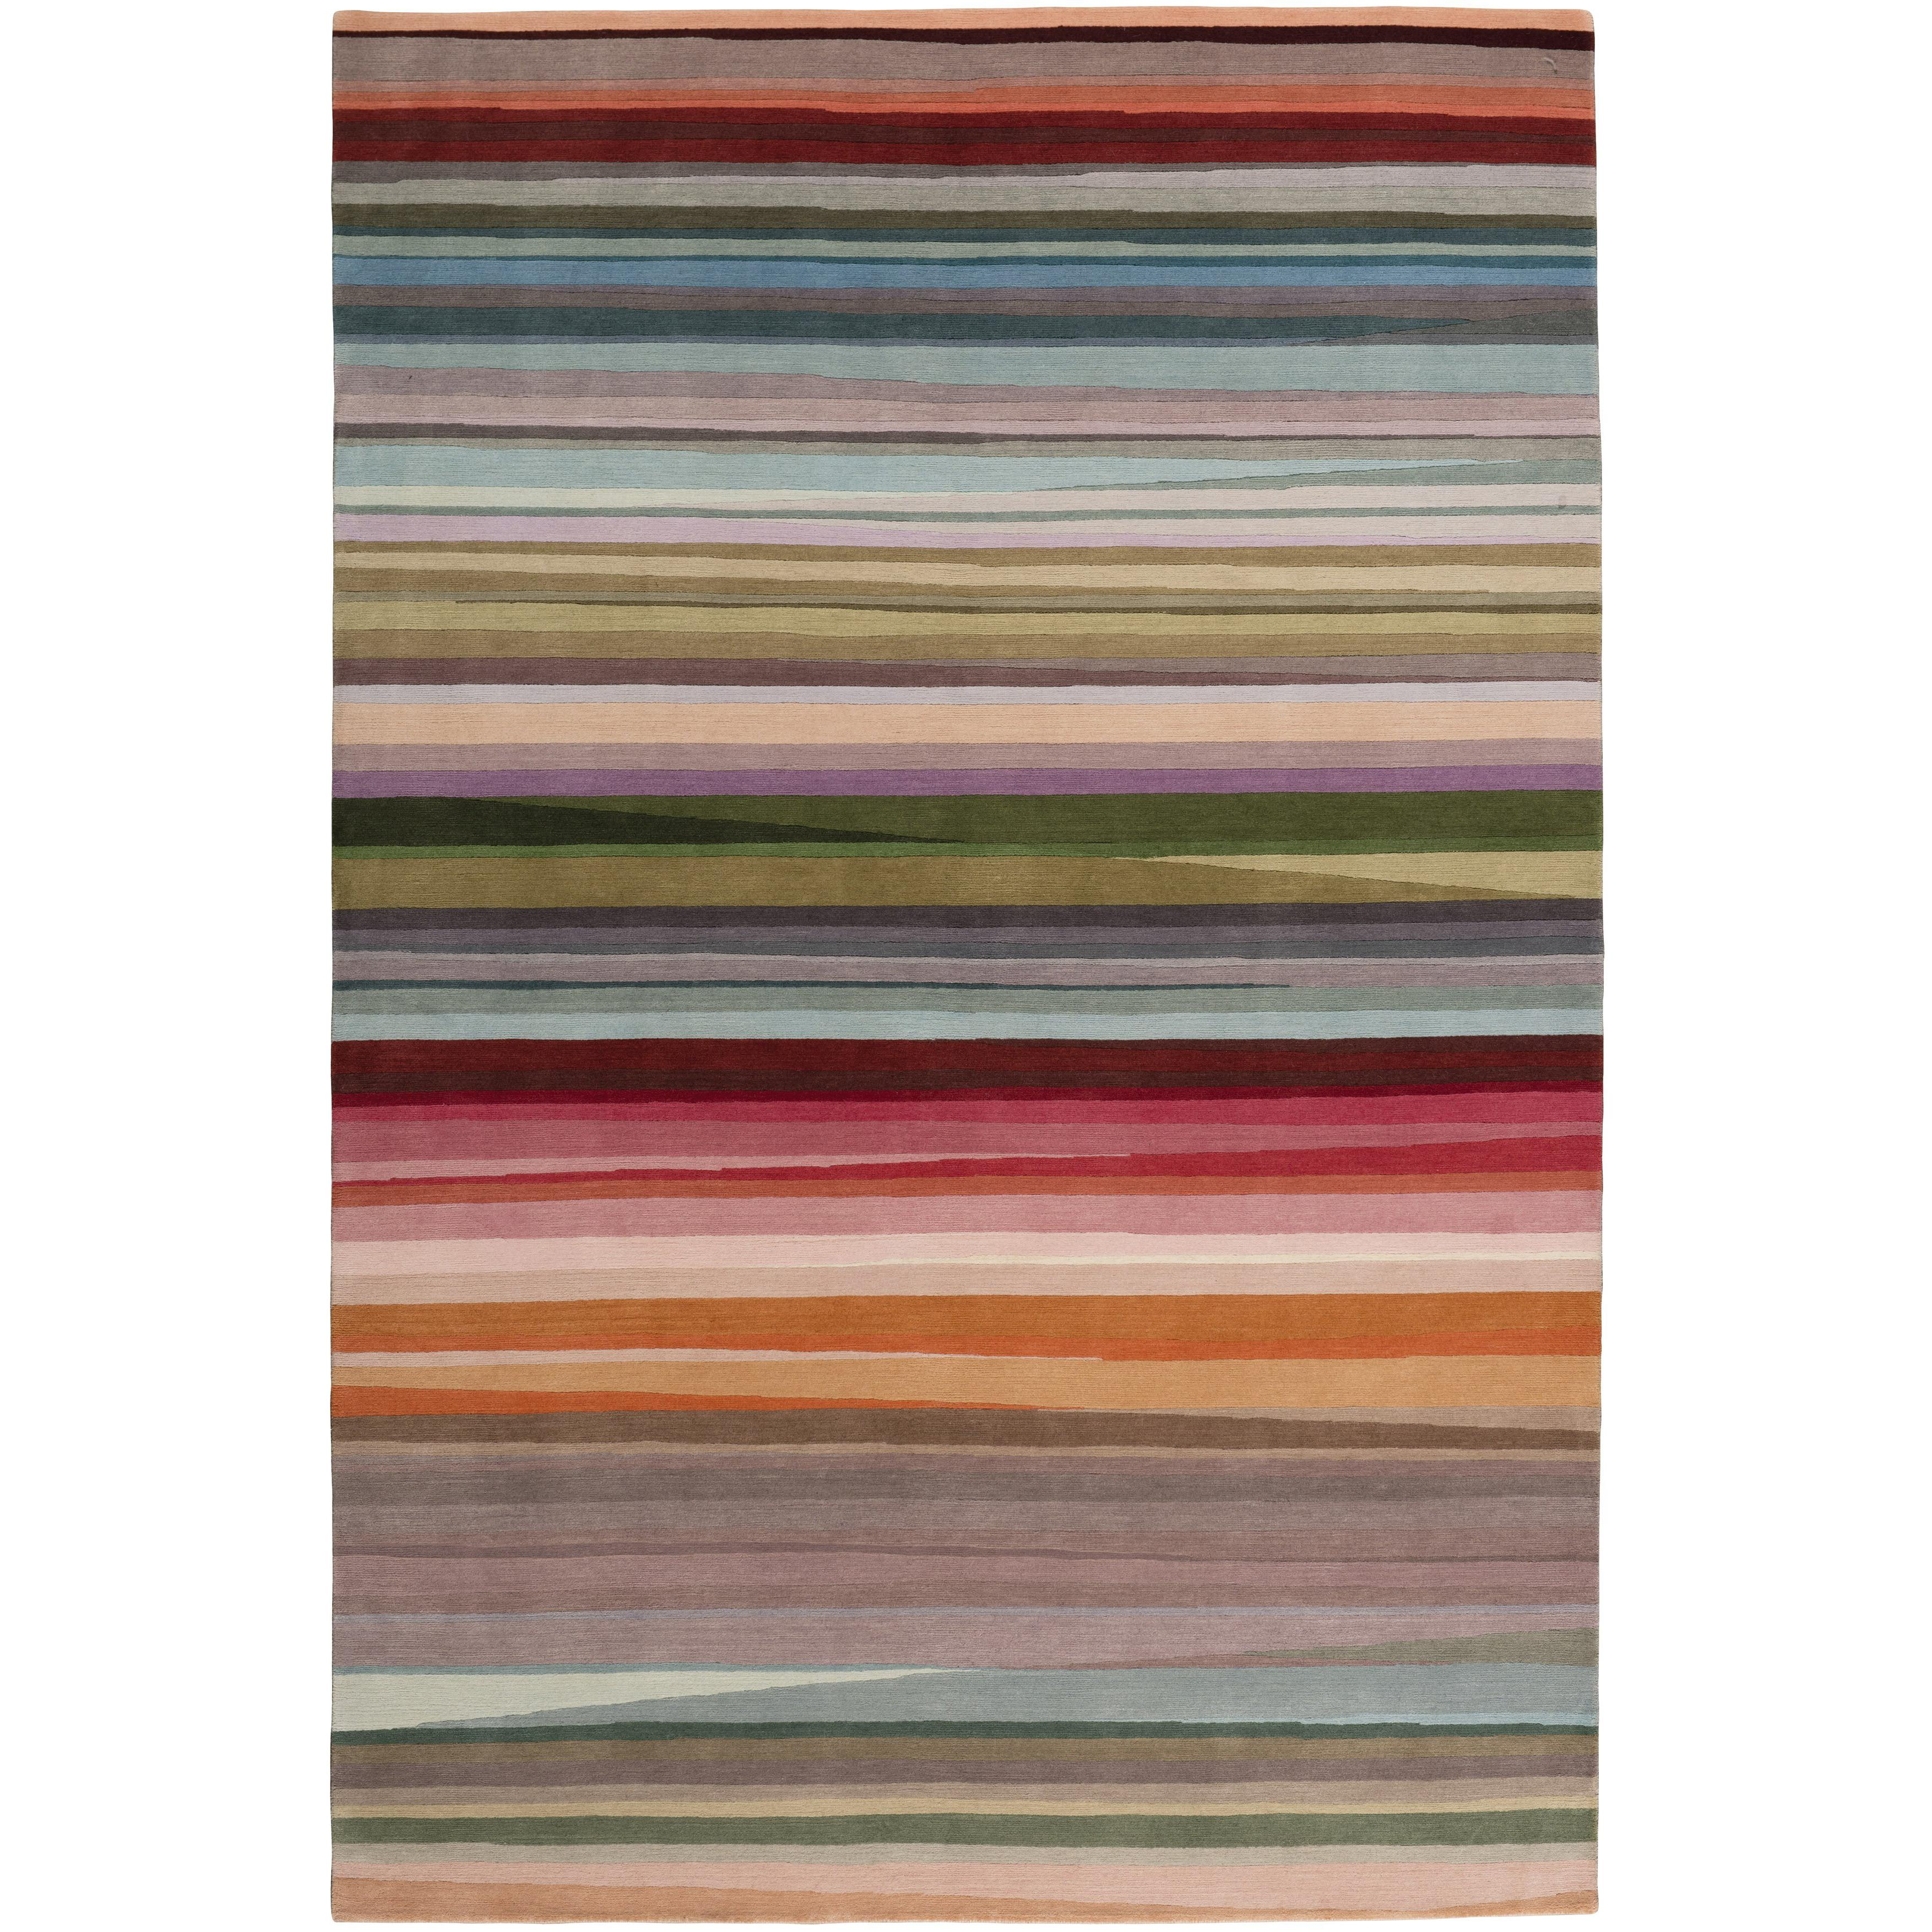 Festival Hand-Knotted 10x8 Rug in Wool by Paul Smith